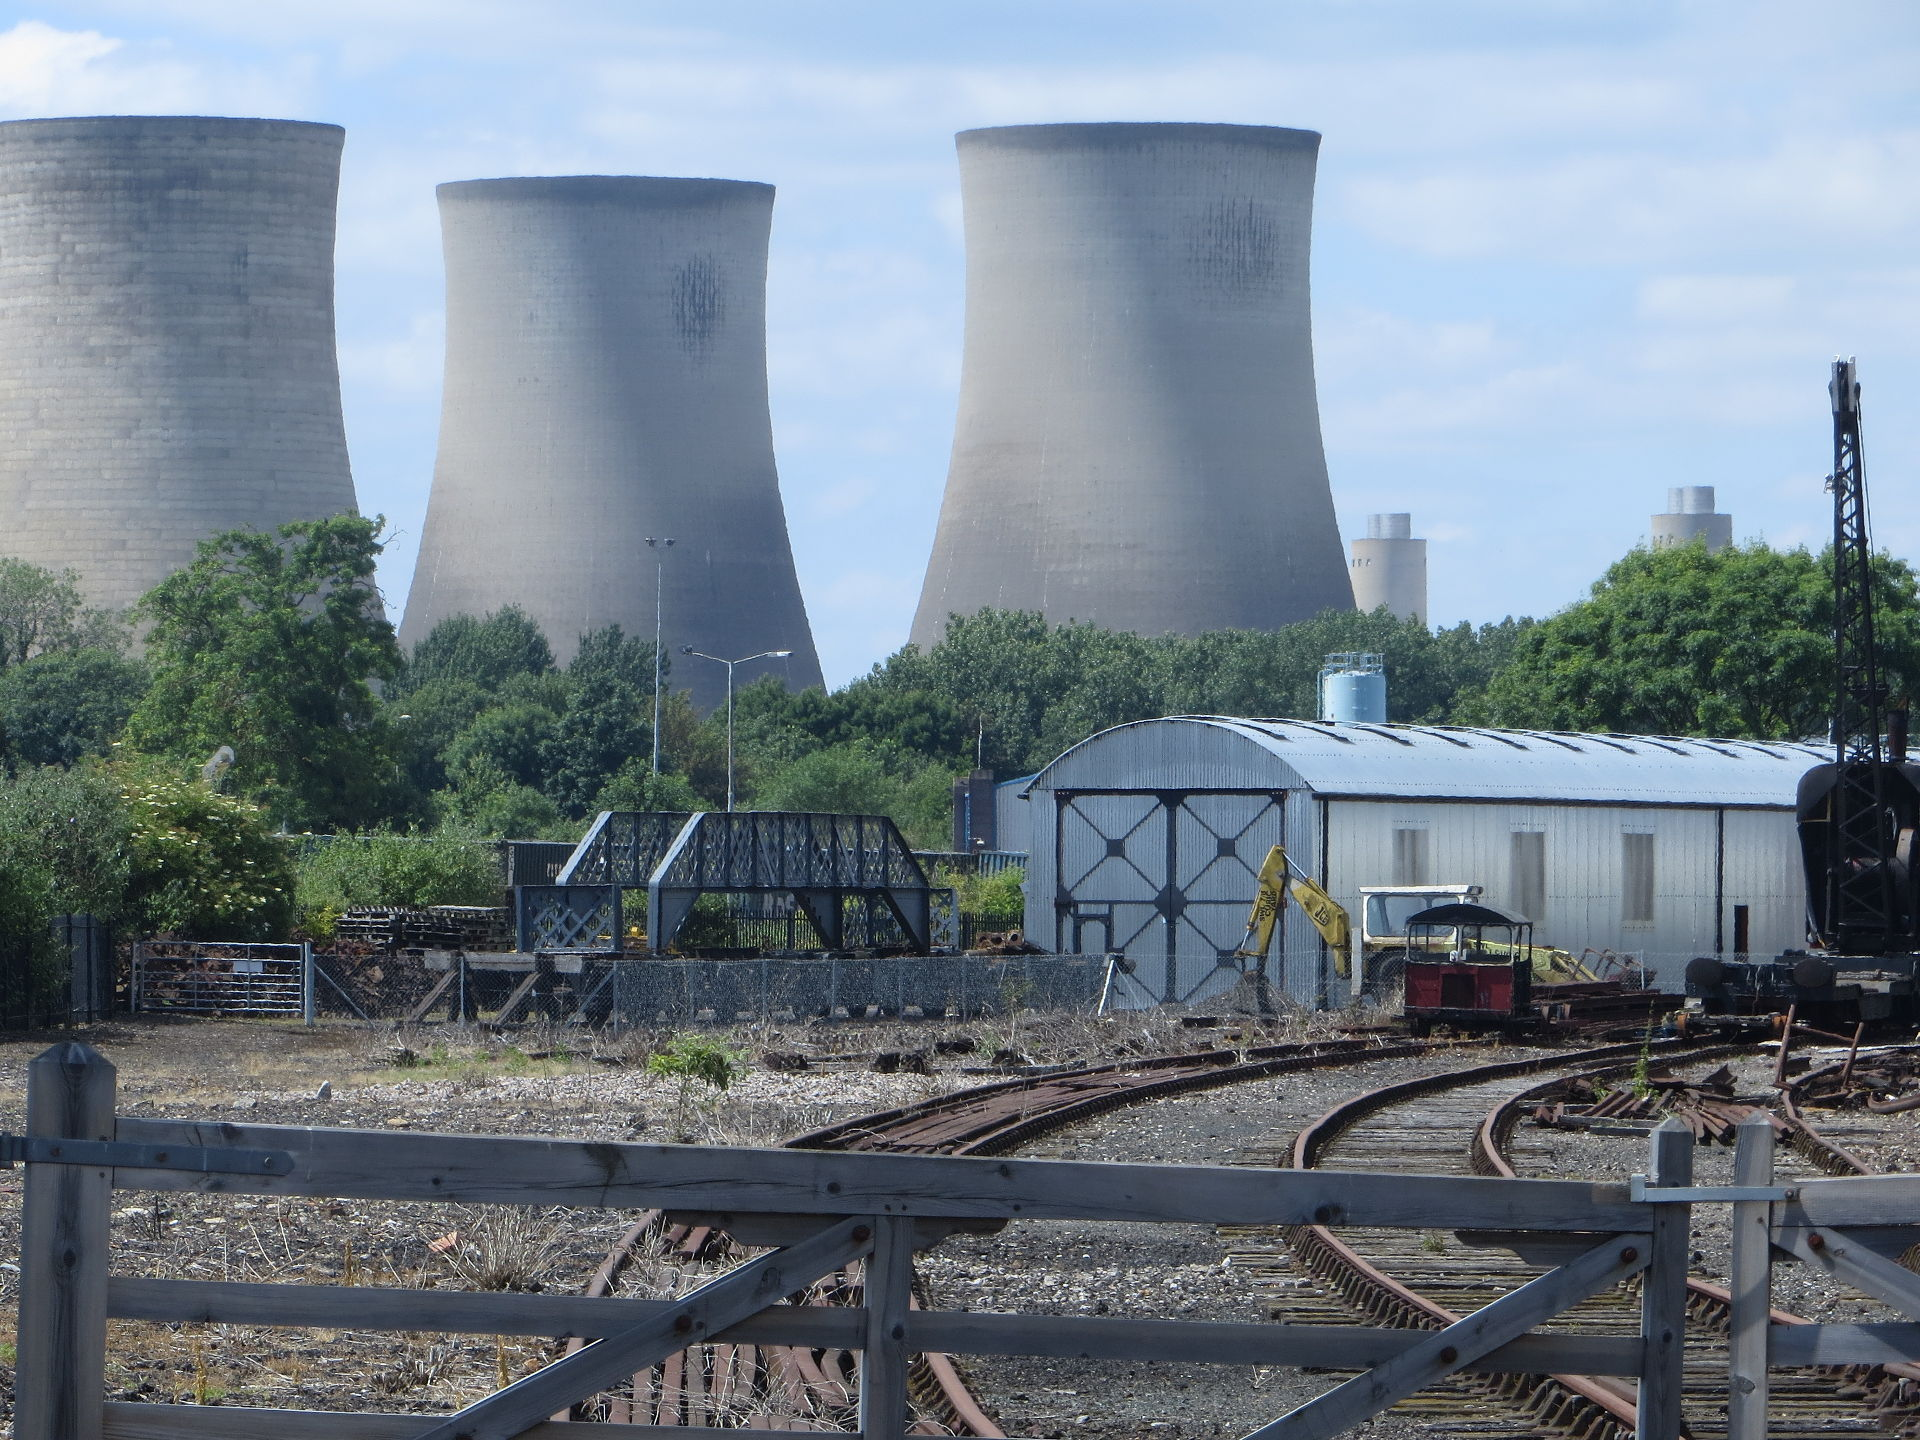 Didcot Power Station - where else with those cooling towers? Photo credit: Forester2009 CC BY-SA 3.0 via Wikimedia Commons.